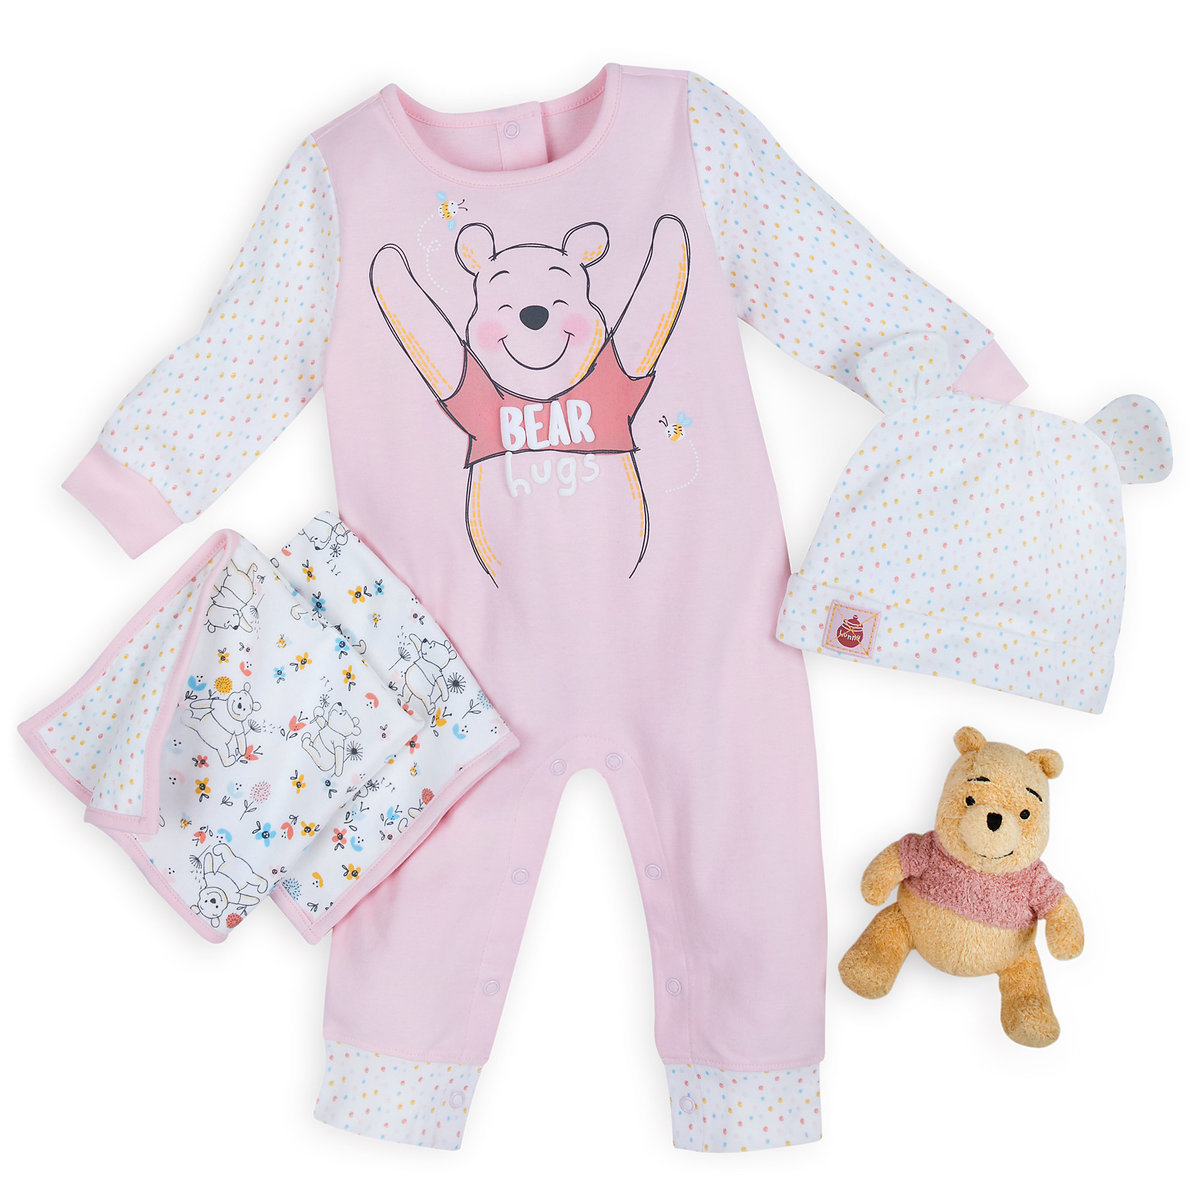 575f2cd56b08 Product Image of Winnie the Pooh Gift Set for Baby - Pink   1